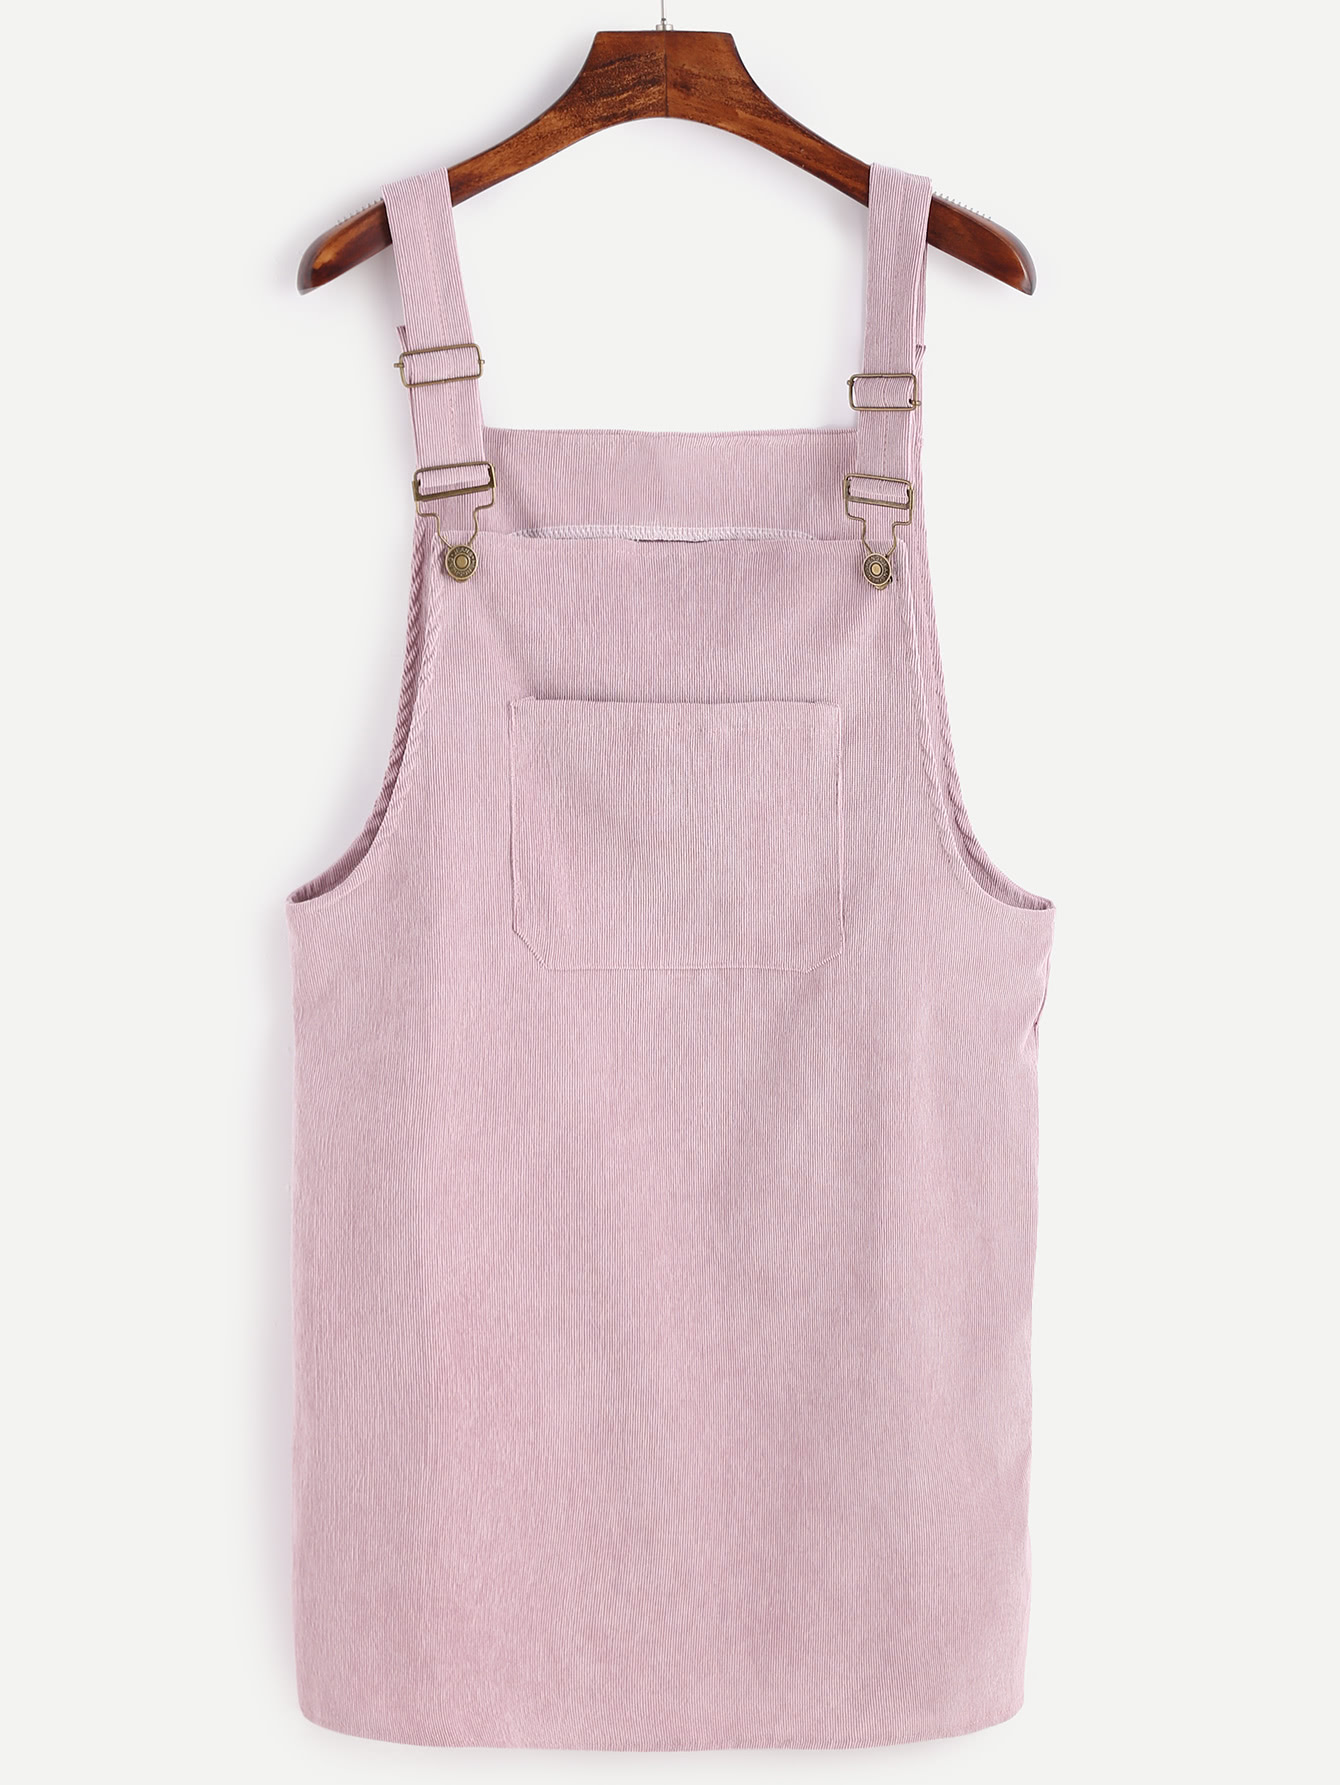 Corduroy Overall Dress With Pocket dress161021102